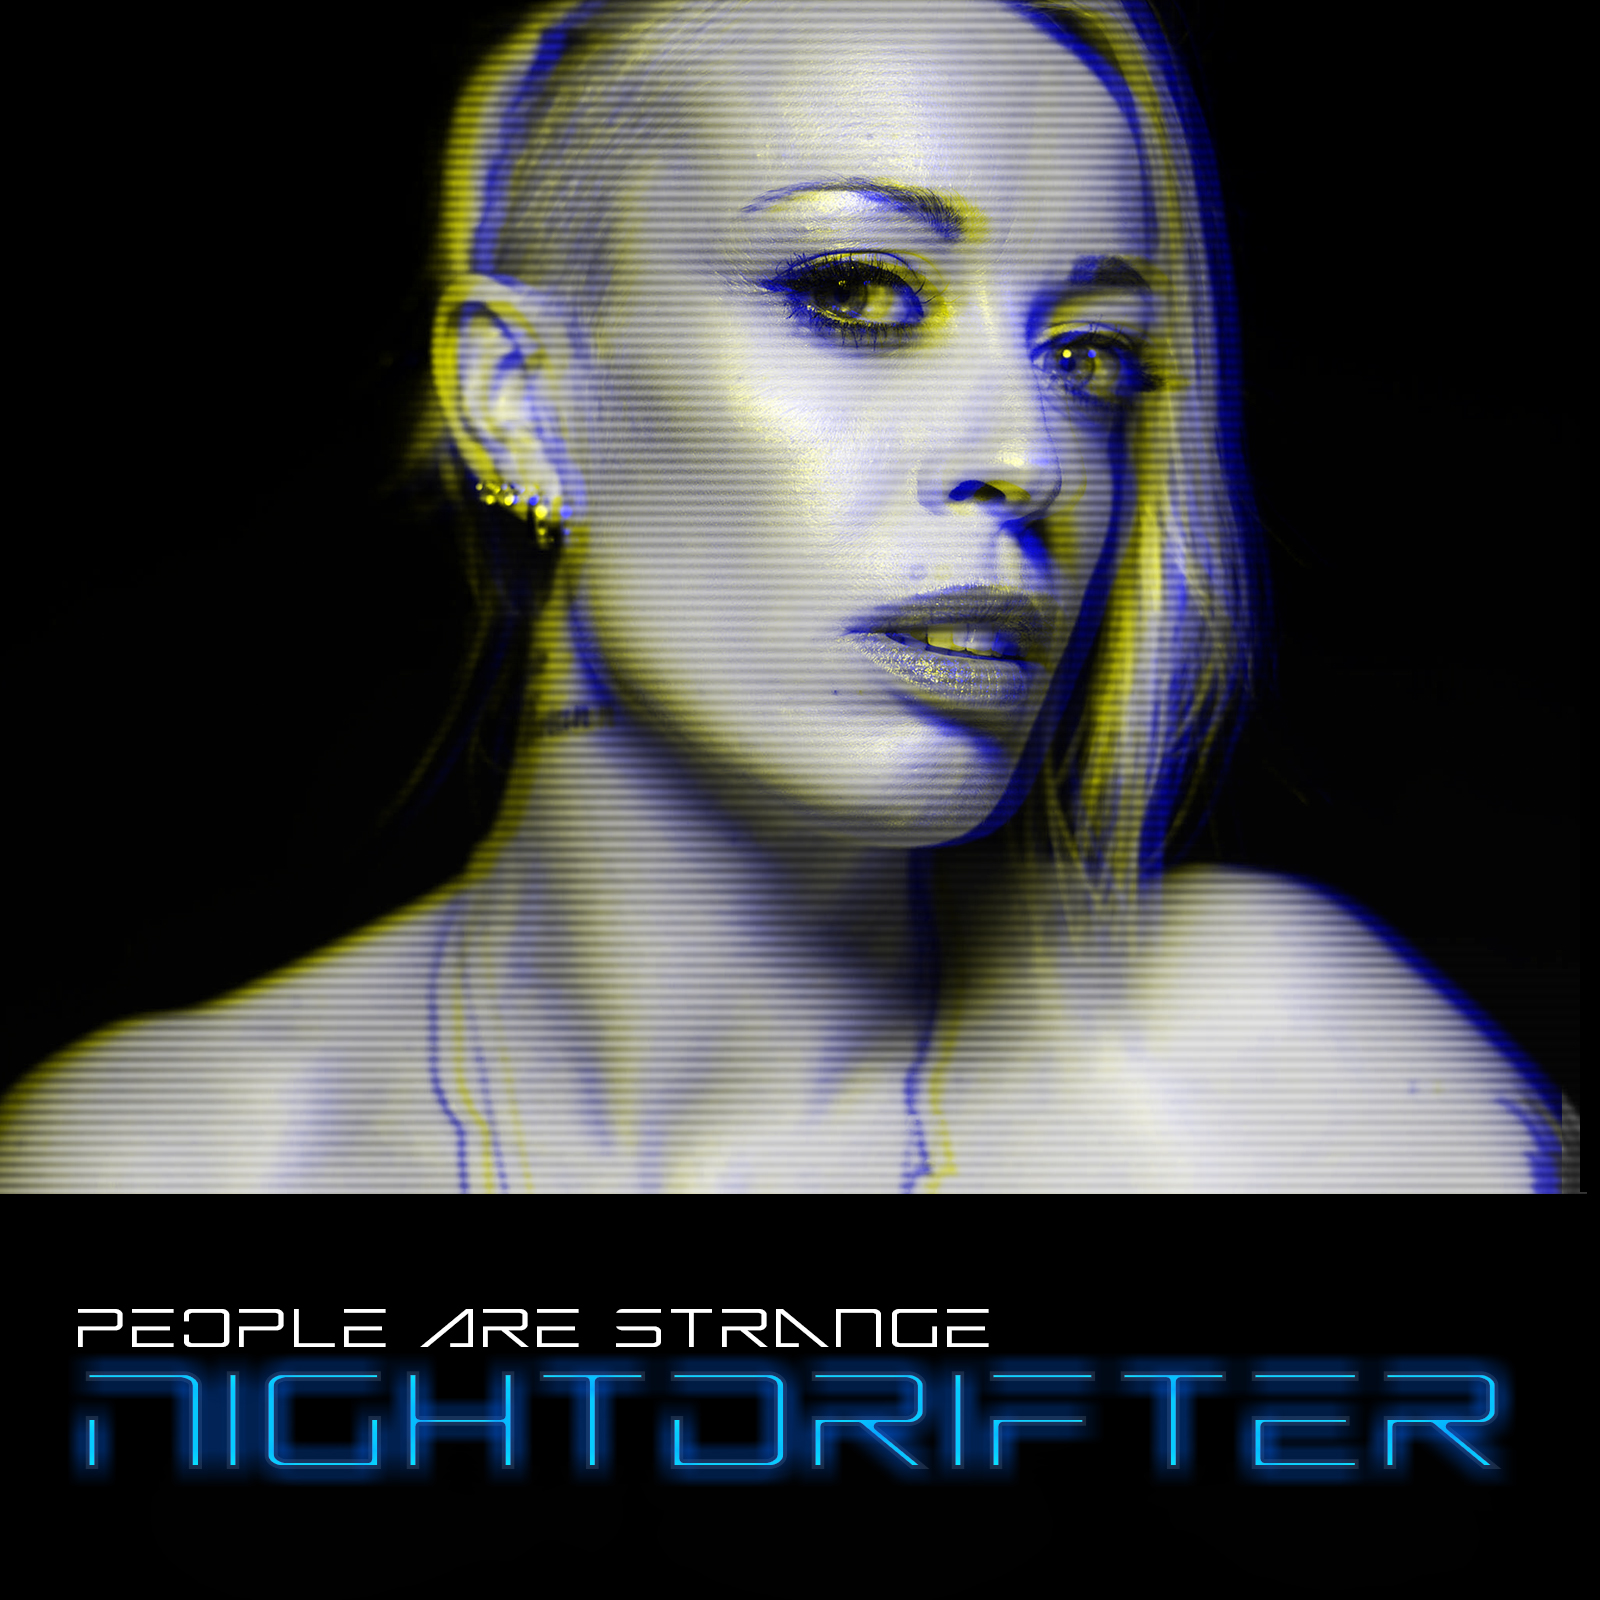 Night Drifter Is Back With A New Single 'People Are Strange'